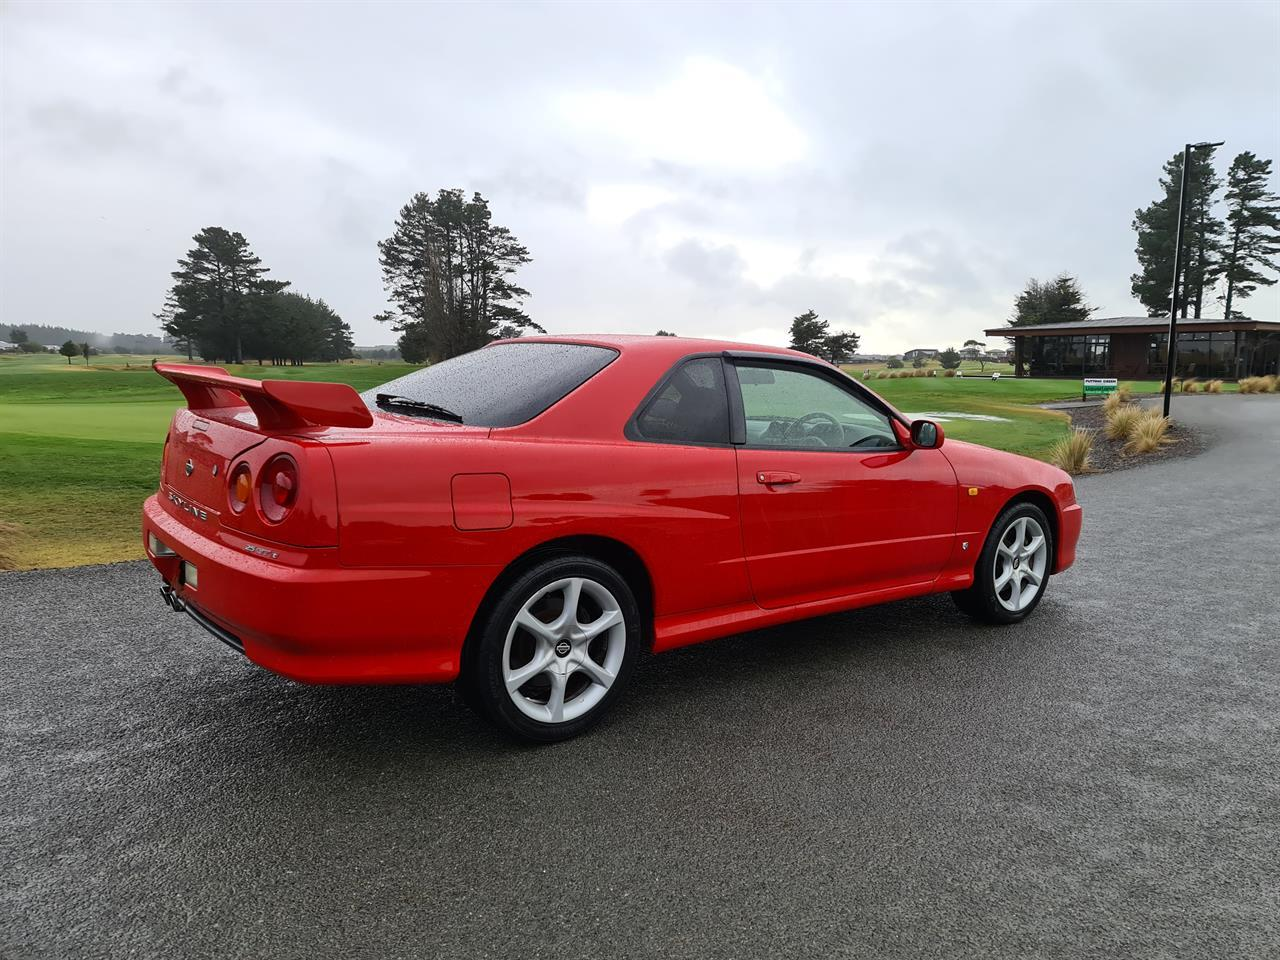 image-4, 2000 Nissan Skyline COUPE 25 GT TURBO at Christchurch